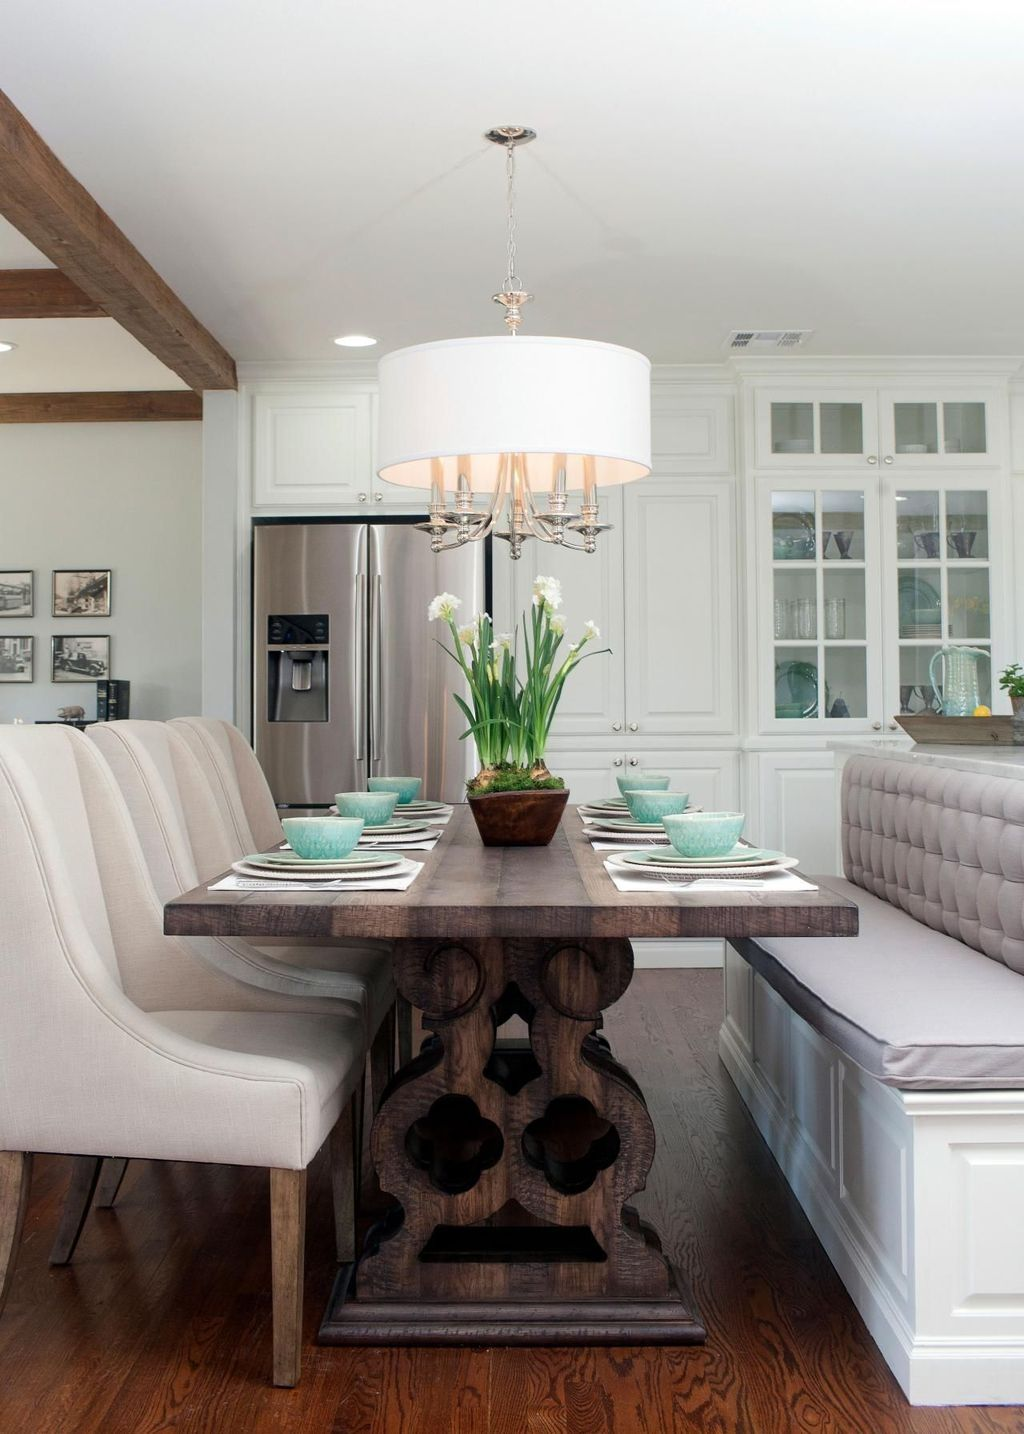 30 splendid kitchen islands ideas with seating and dining areas rh pinterest com